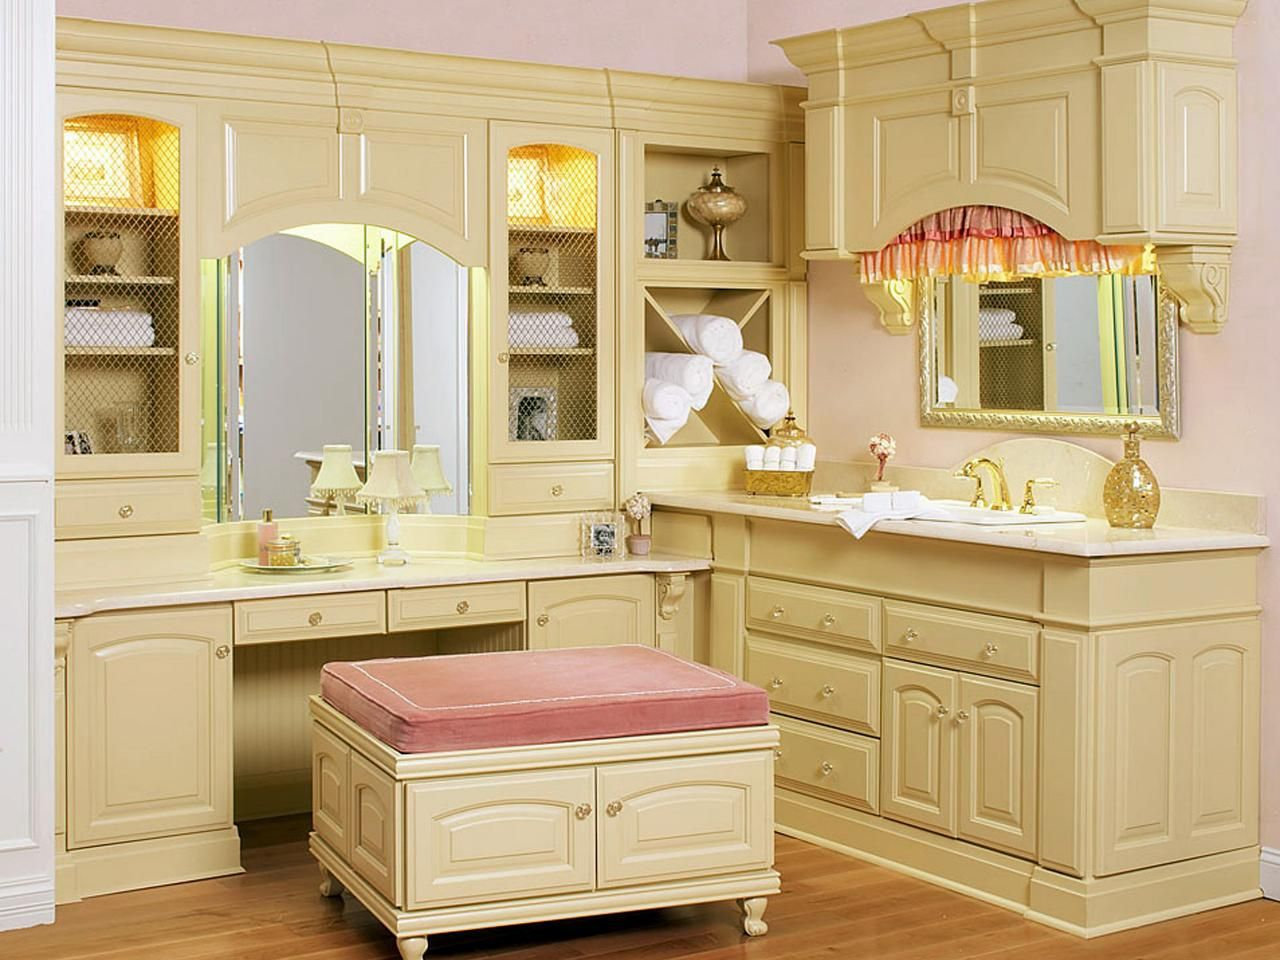 A Spacious Cream Vanity With Matching Stool Offers Plenty Of Storage Space While Also Serving As A P With Images Bathroom With Makeup Vanity Unique Bathroom Trendy Bedroom